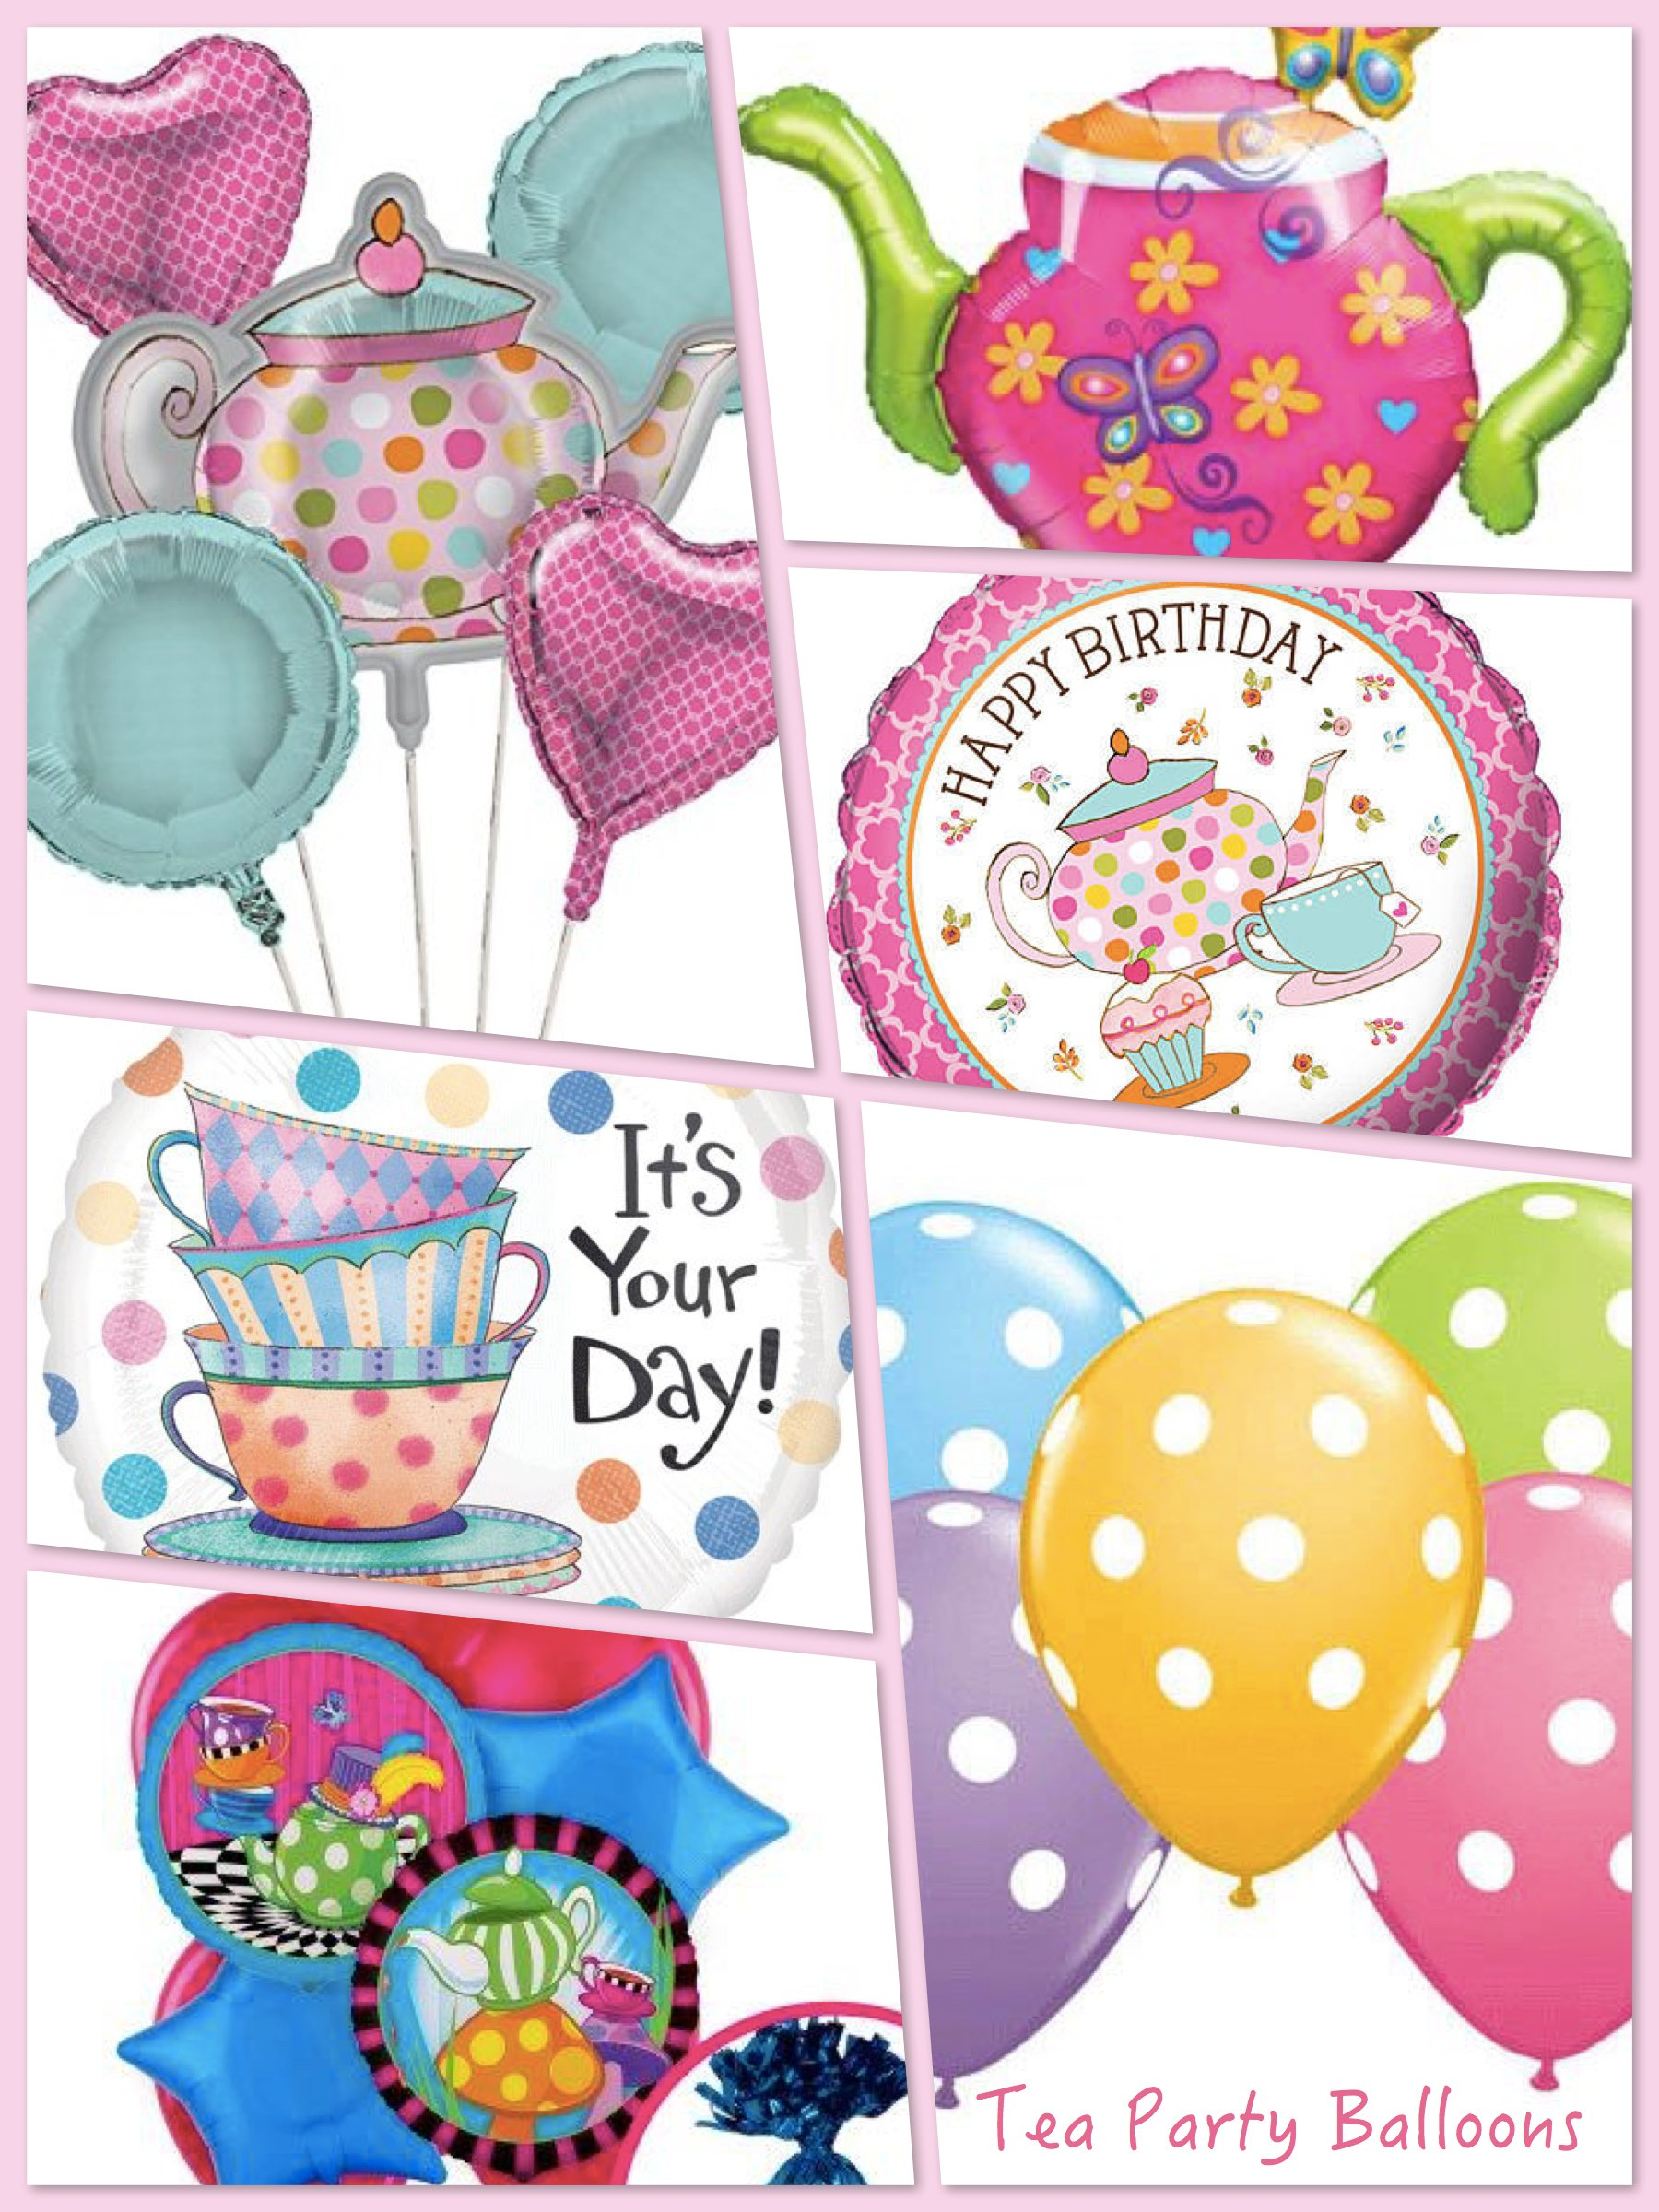 Tea Party Balloons